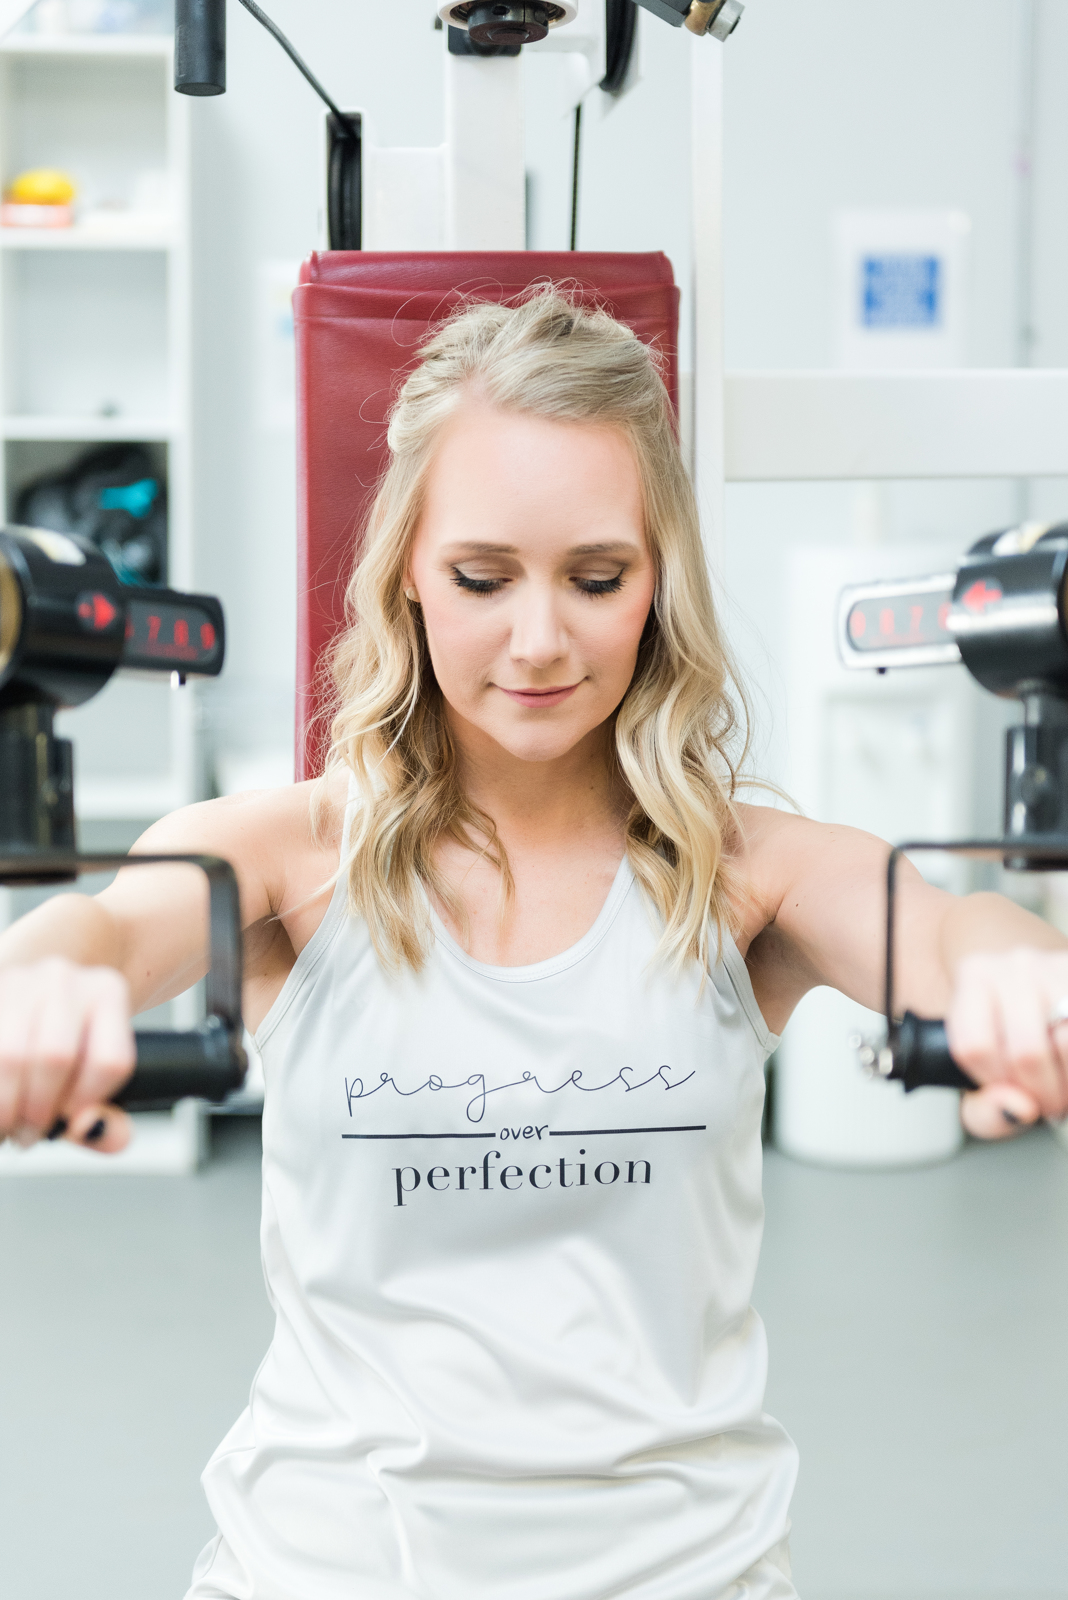 blonde woman using workout bench in white tank top